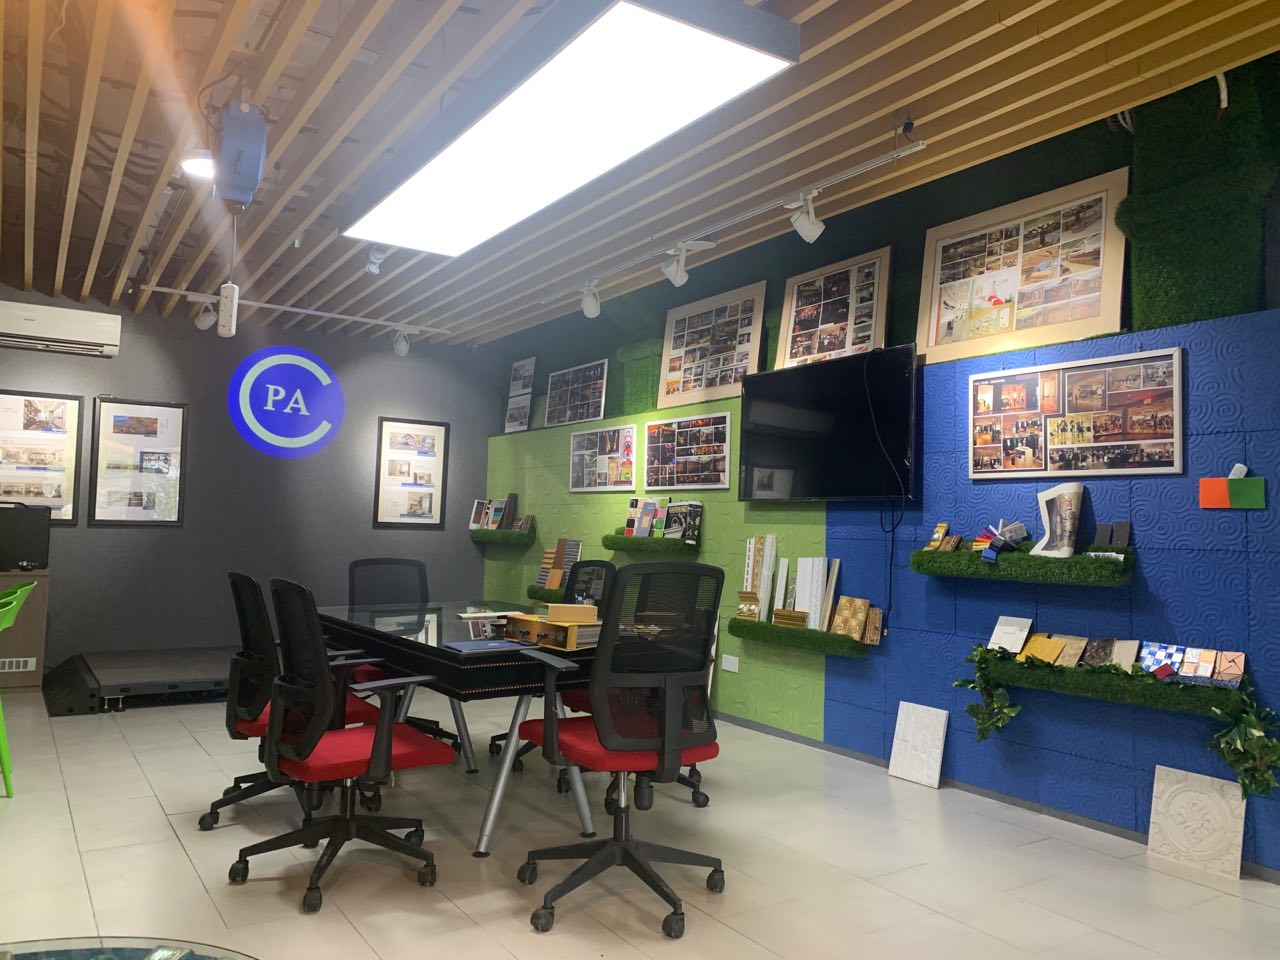 Commercial Interior Design and build company based in Singapore